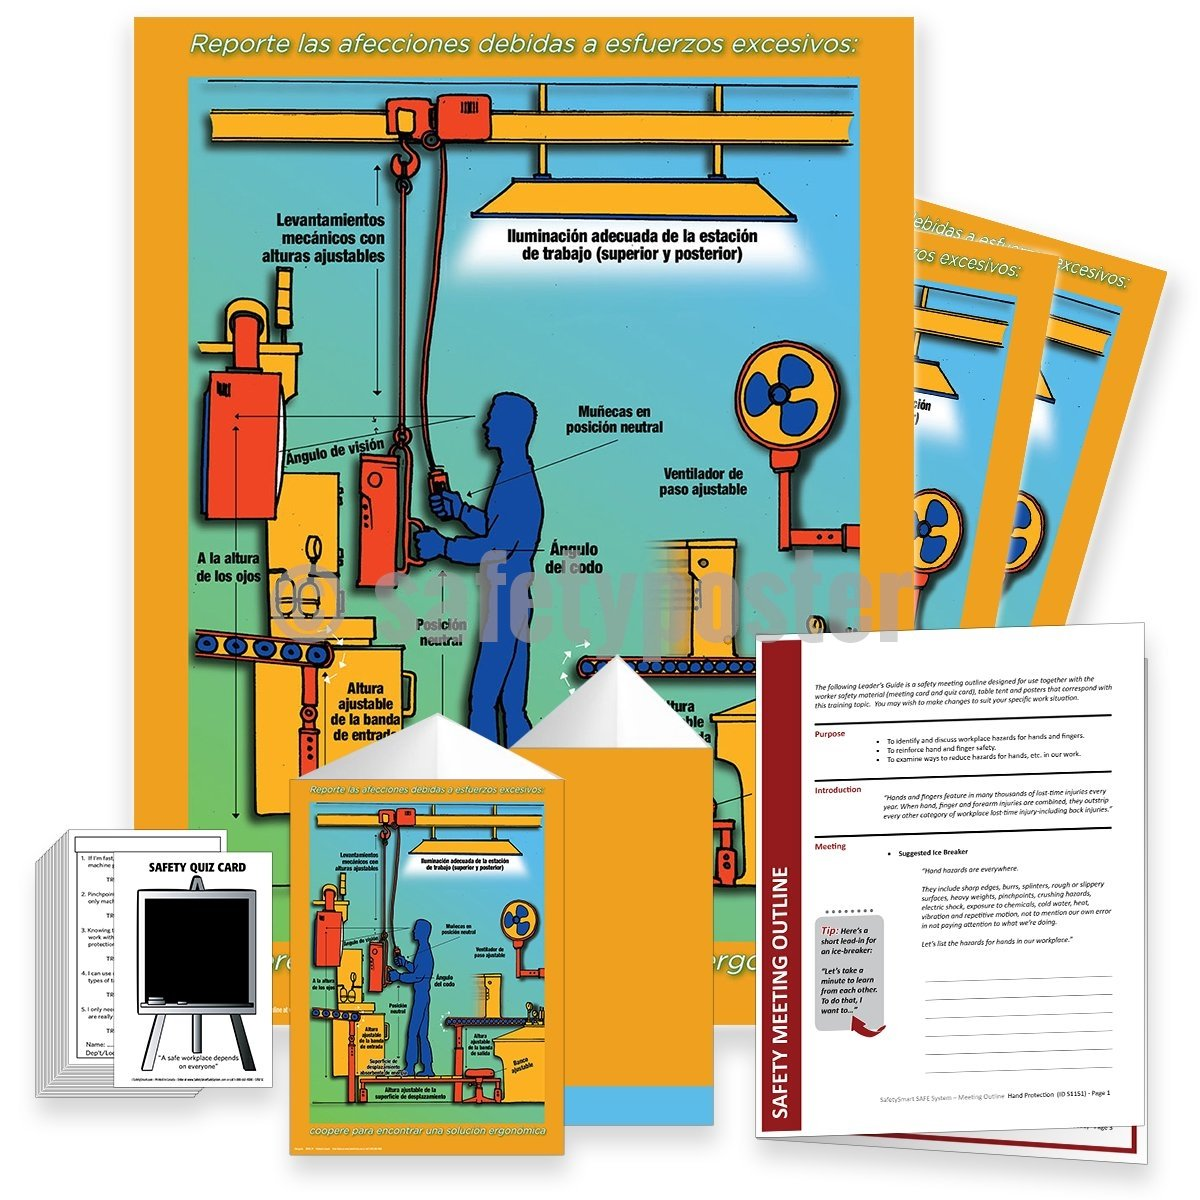 Safety Meeting Kit - Report Strain: Help Find Ergonomic Solutions Kits